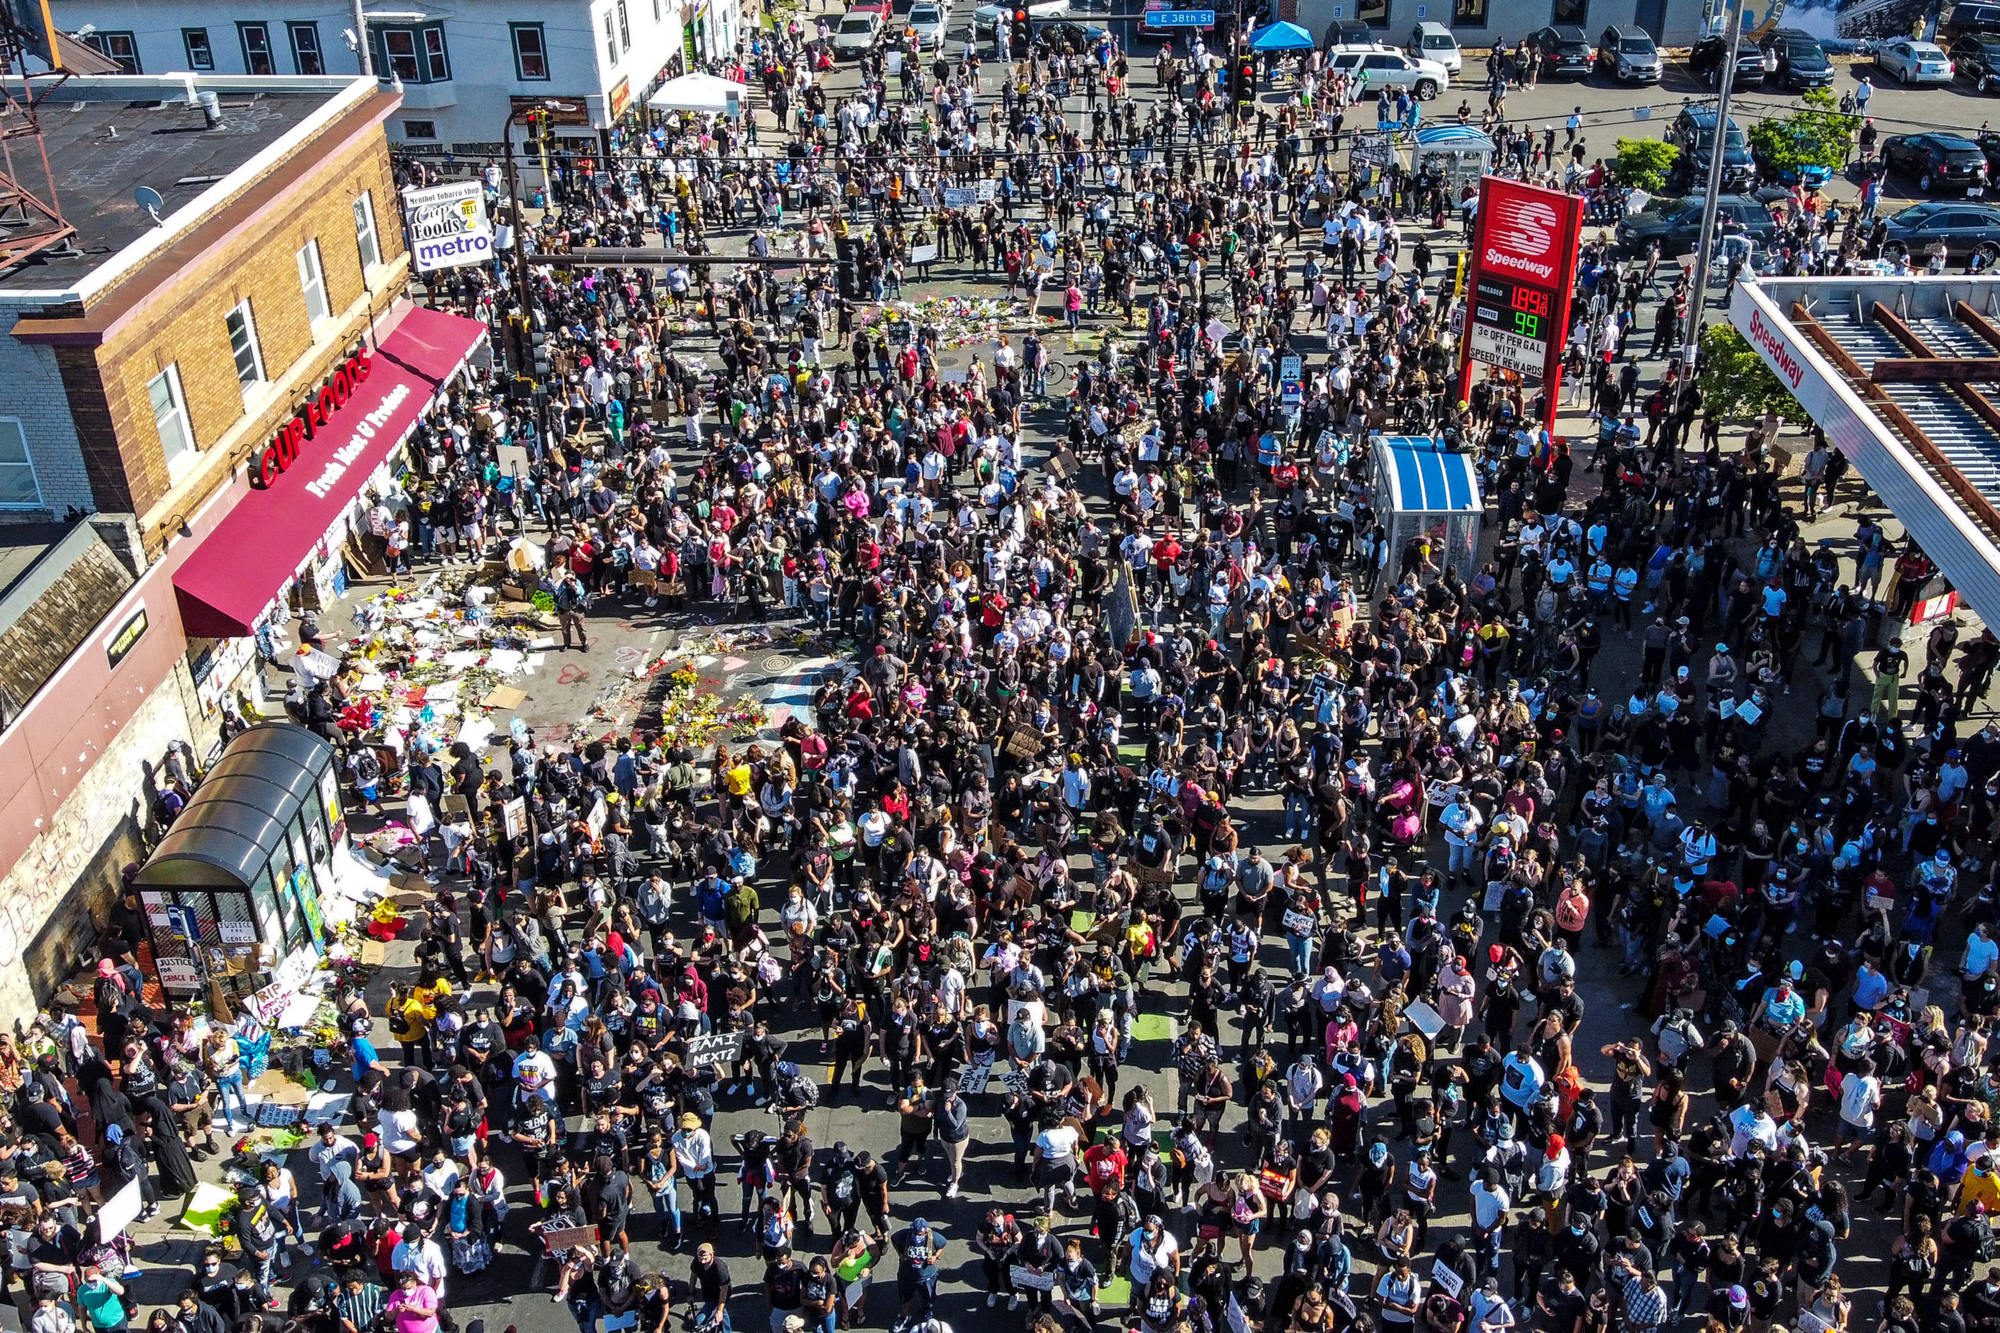 protests in American cities in the wake of the George Floyd murder